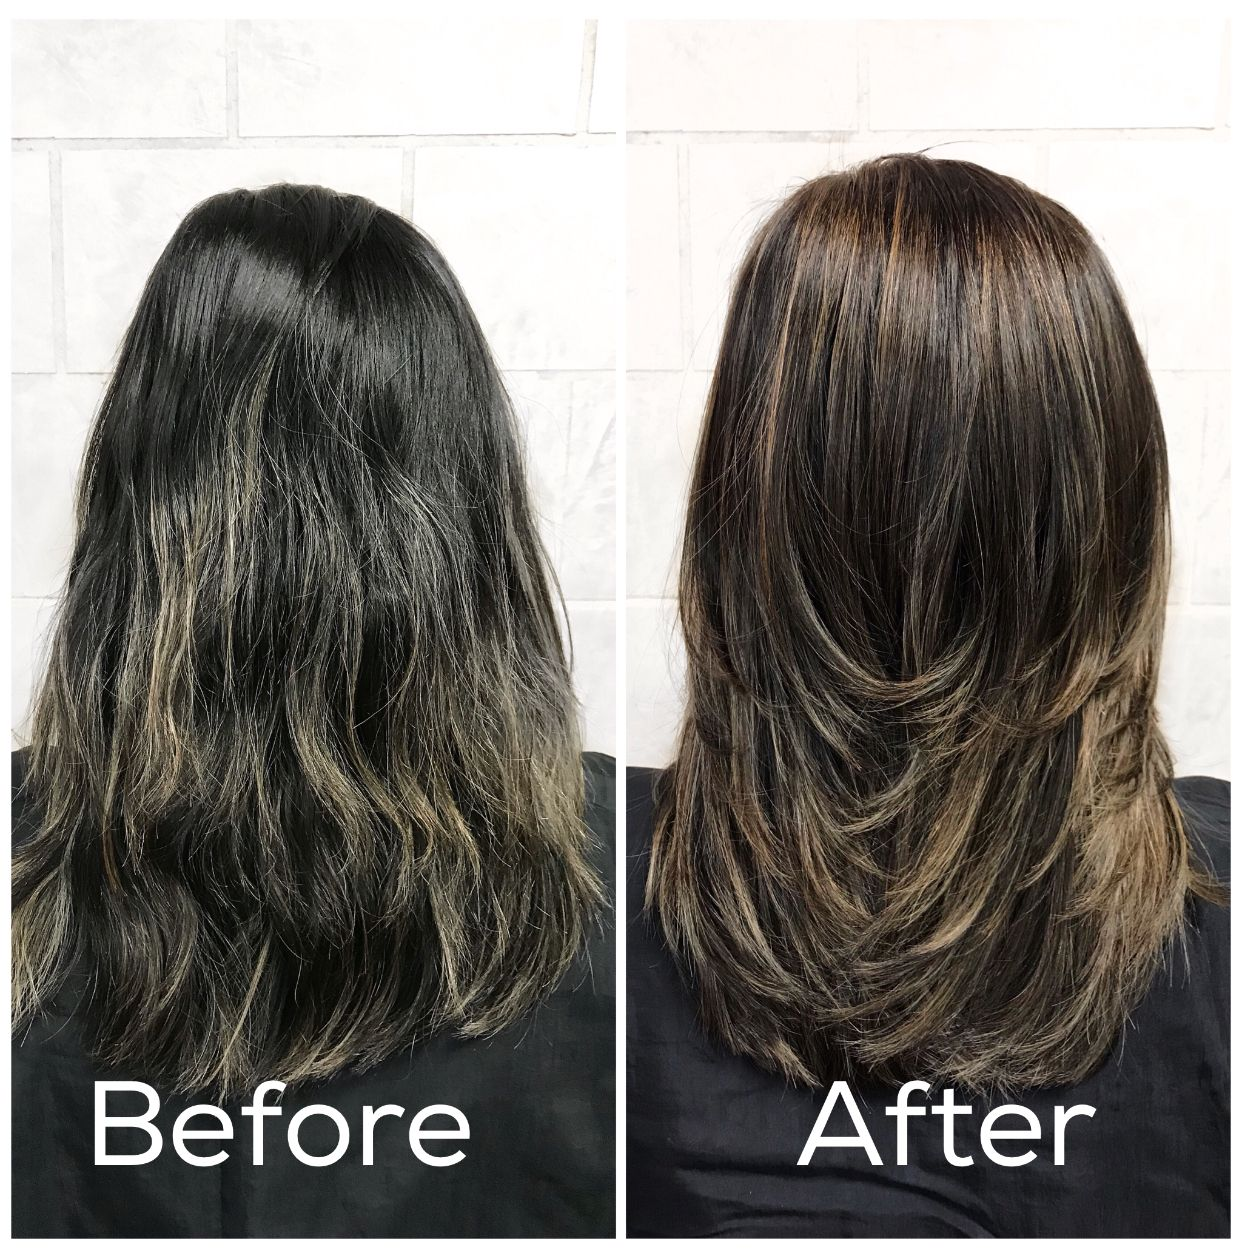 Sarah Dam Chambers Color Correction Specialist At Modern Style Studio Is Known For Turning Disaster Hair Nig In 2020 Color Correction Long Hair Styles Your Hair